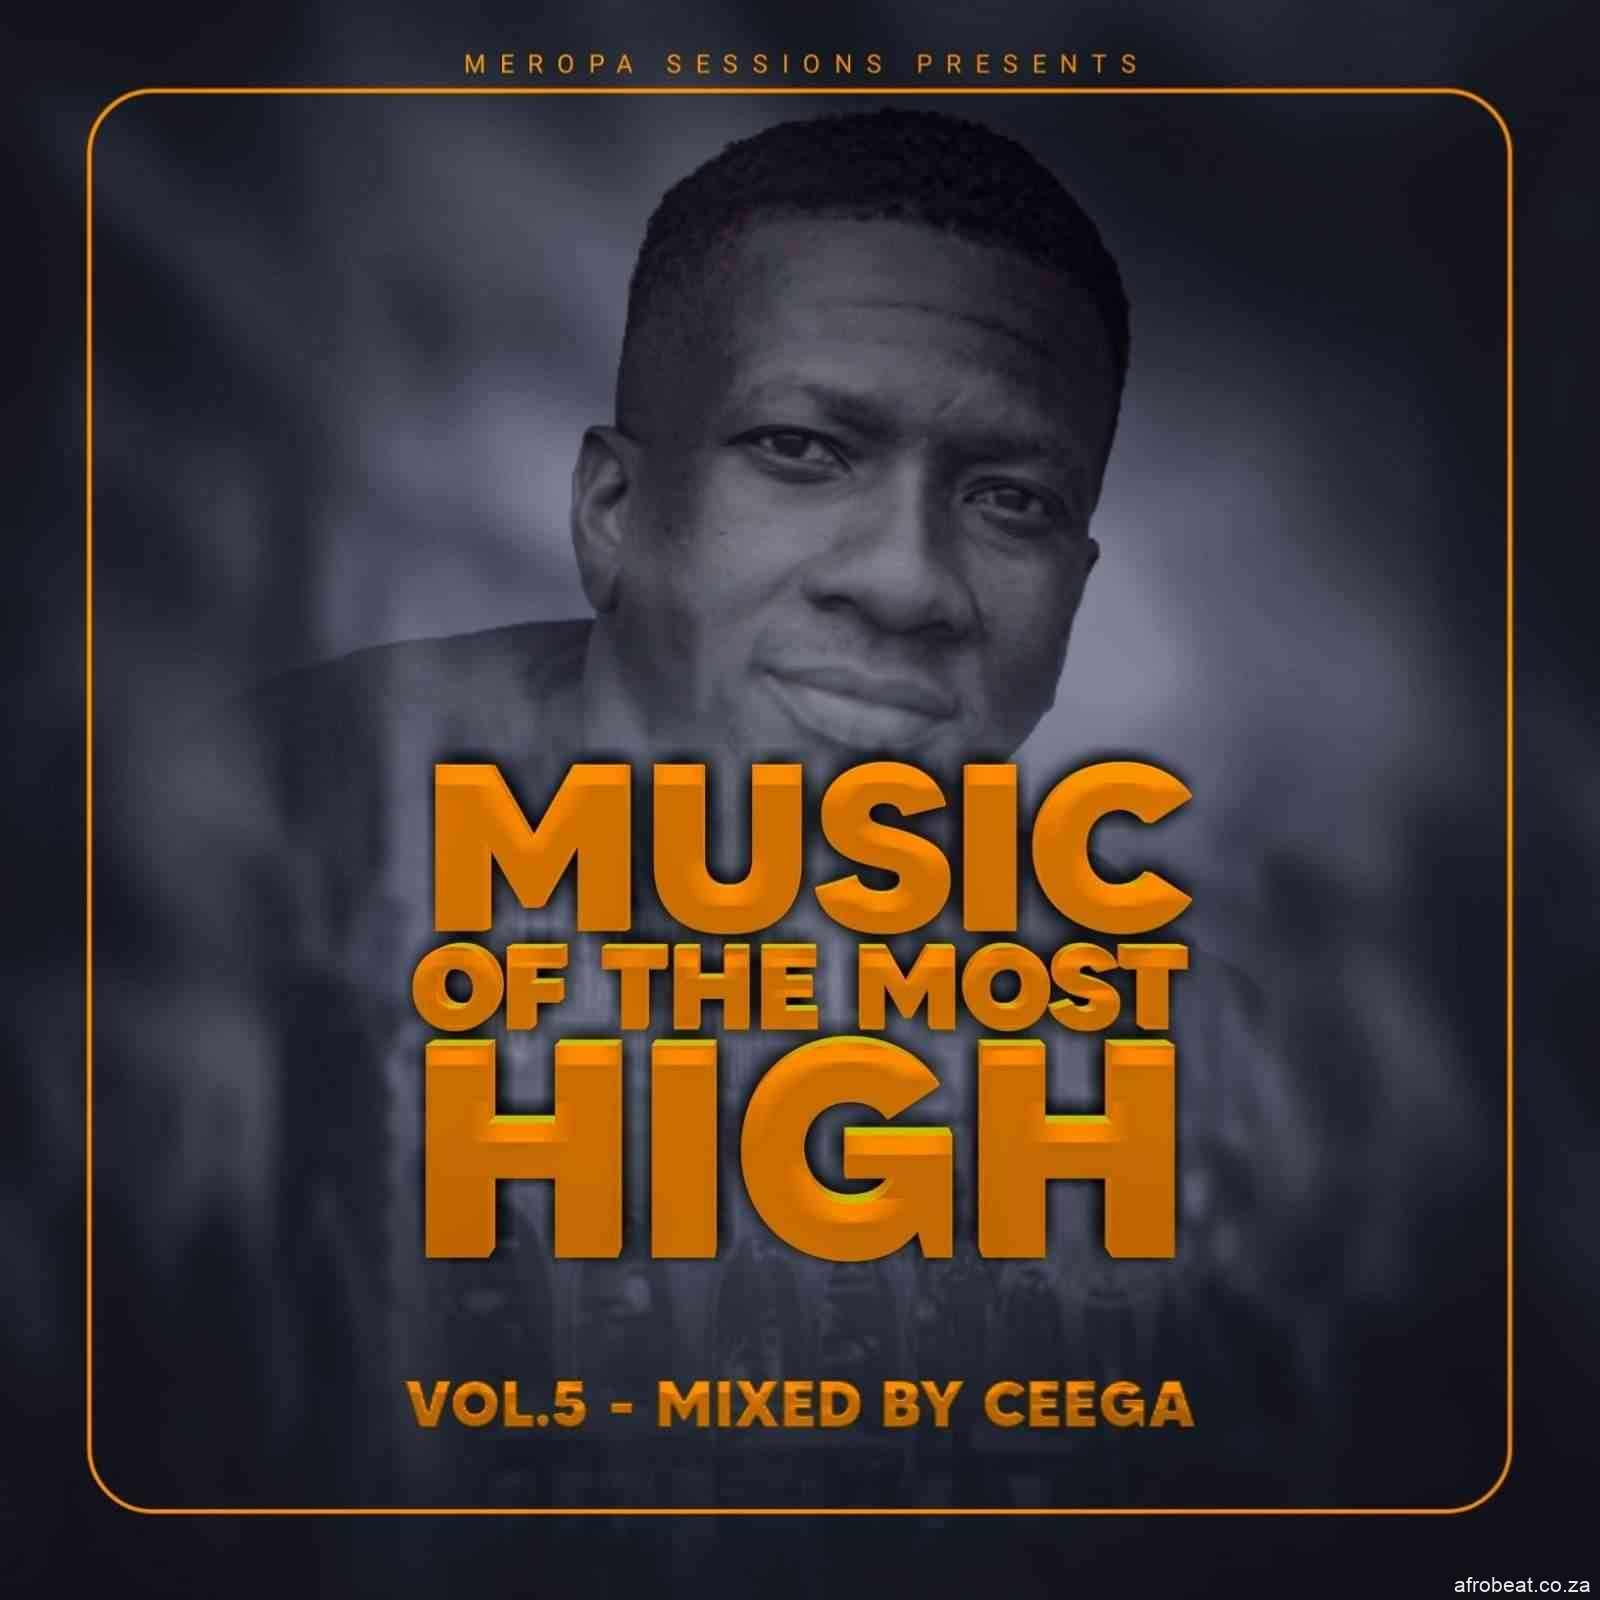 141922604 1644422092403363 3985500271049331976 o - Ceega – Music Of The Most High 2021